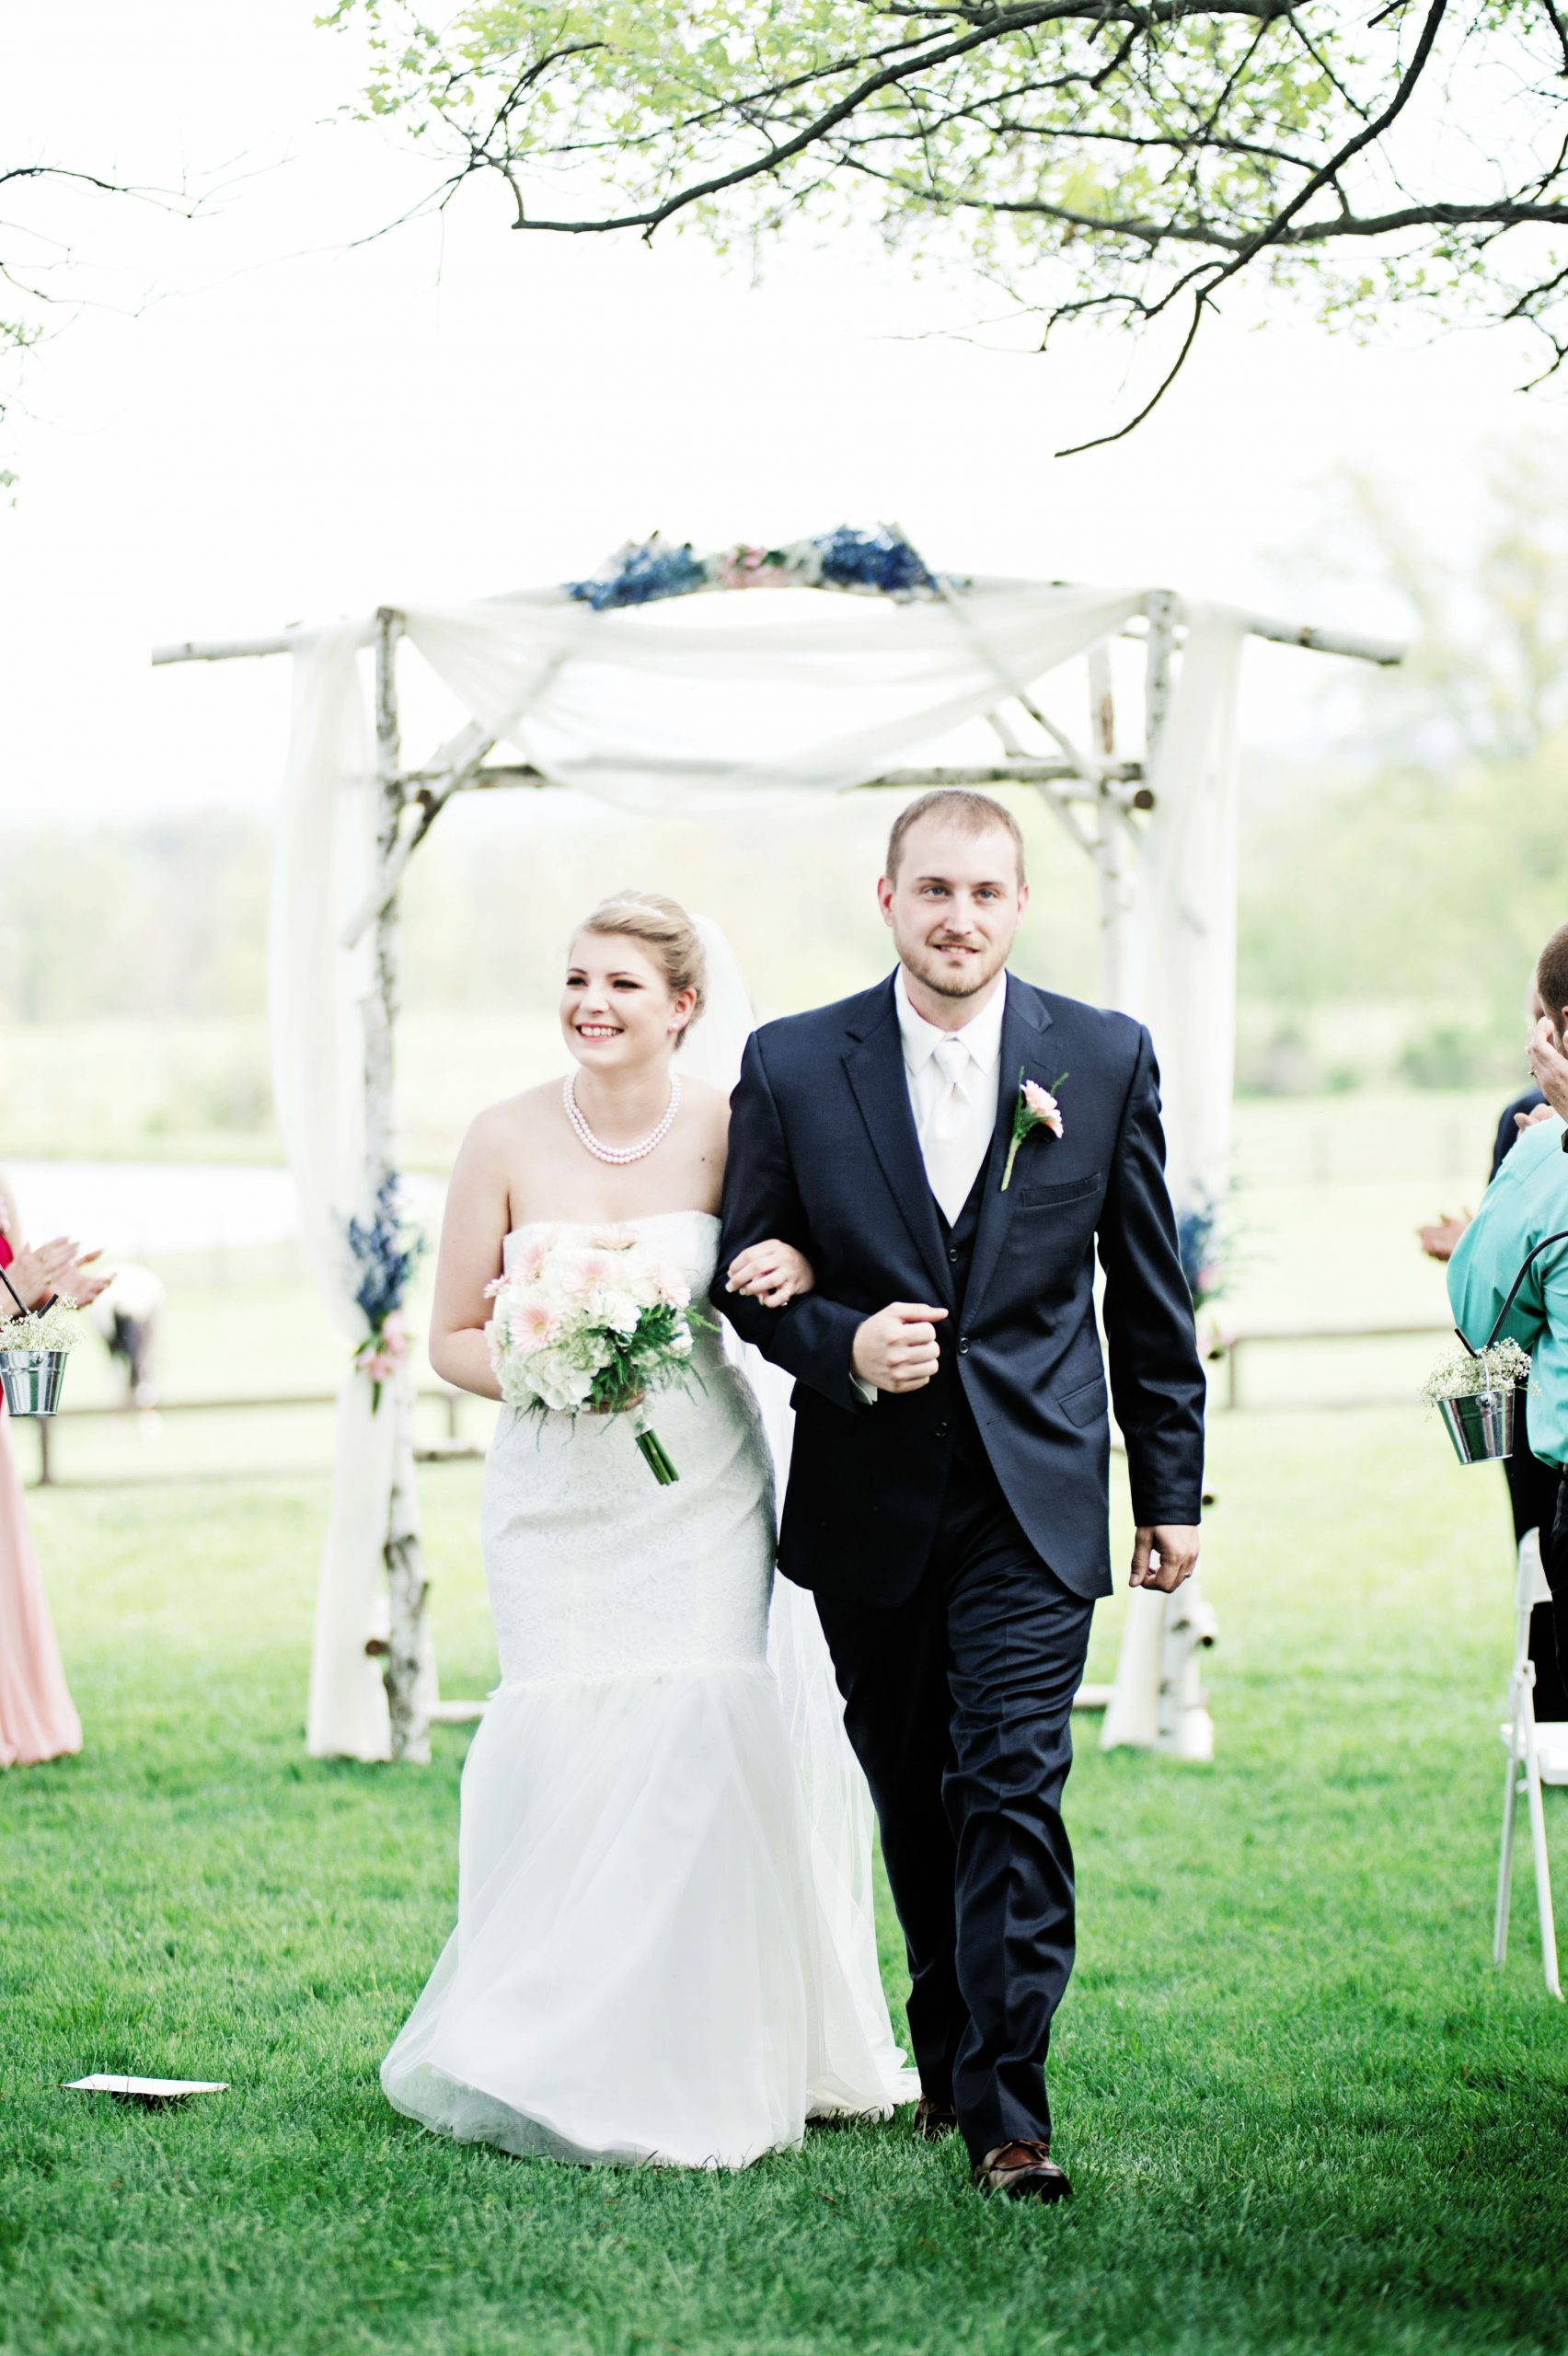 Newly wedded, the loving couple walks back down the isle of Lakeview farms in York, PA. Lovefusion Photography credited for this wonderful shot Featured in Dream Weddings.